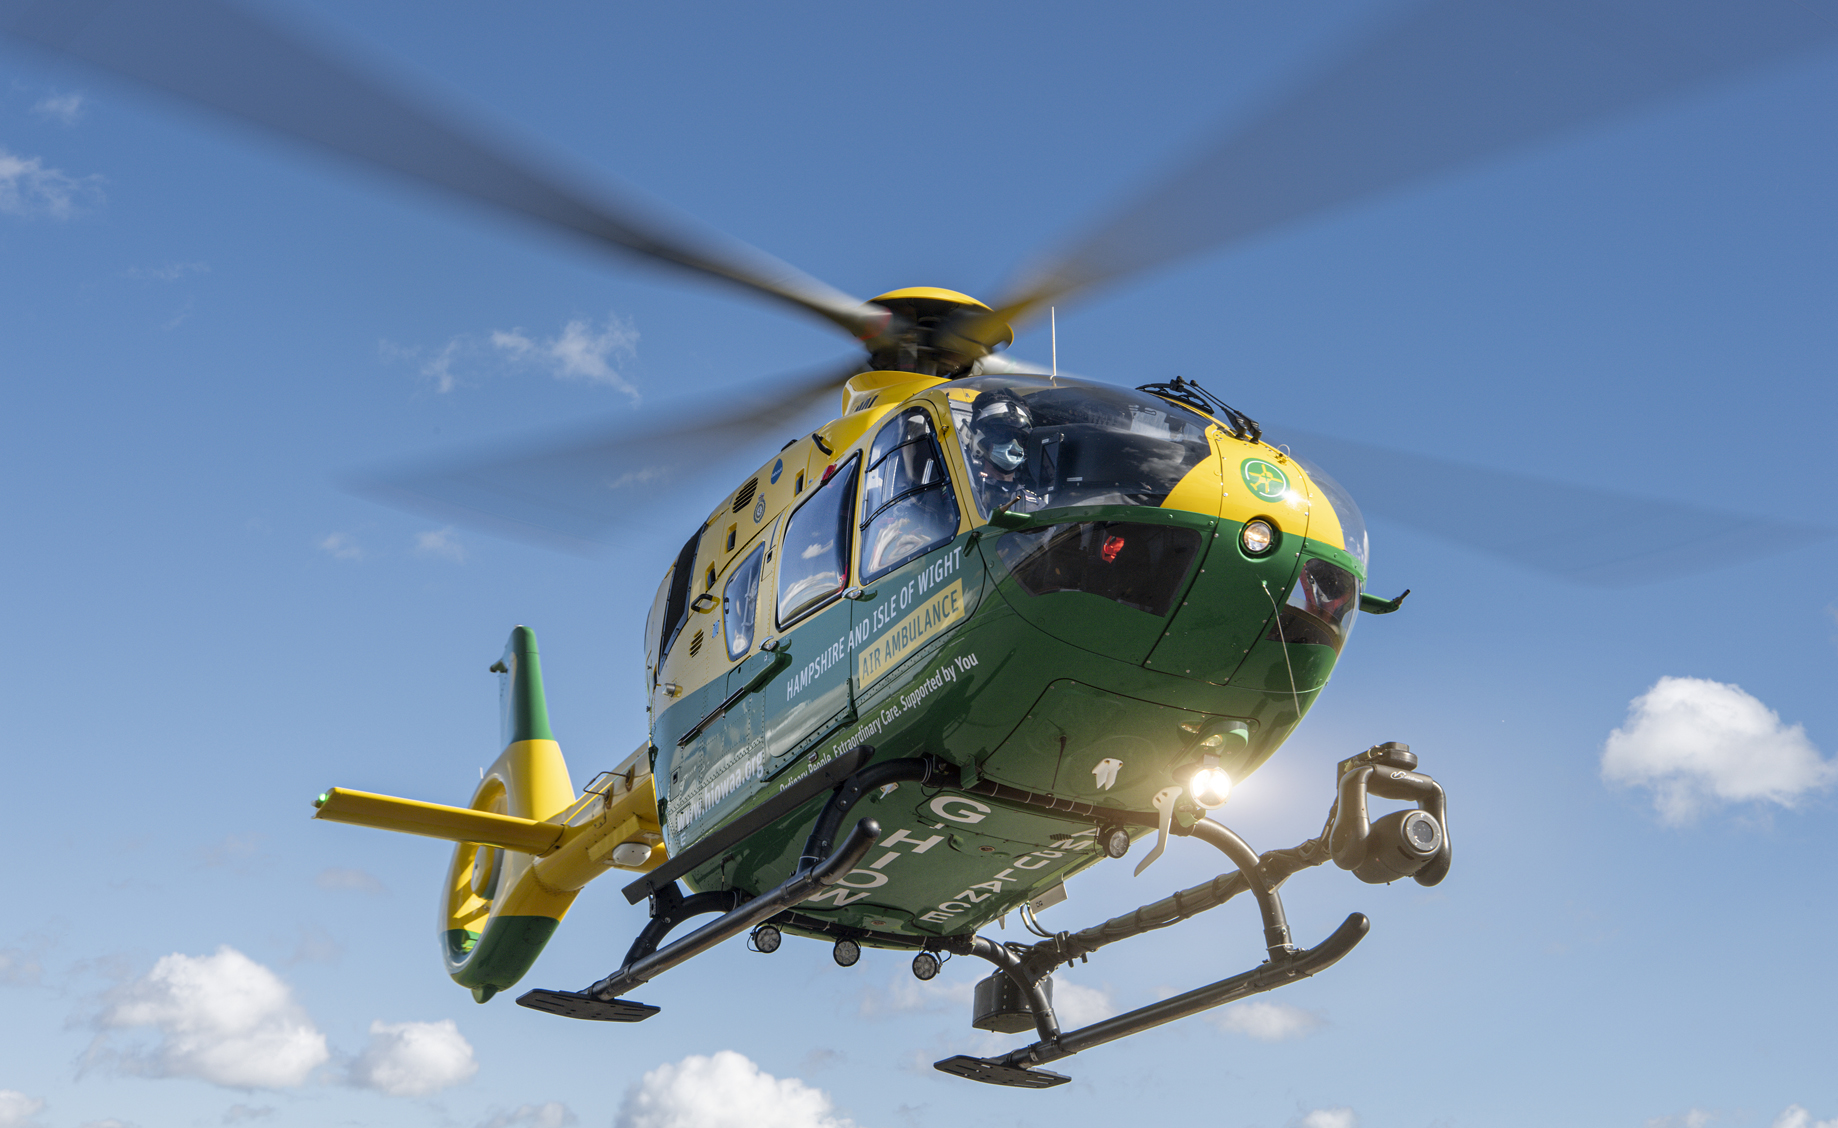 Our helicopter, Helimed 56, is in flight. The sky is blue and the search light underneath is on.